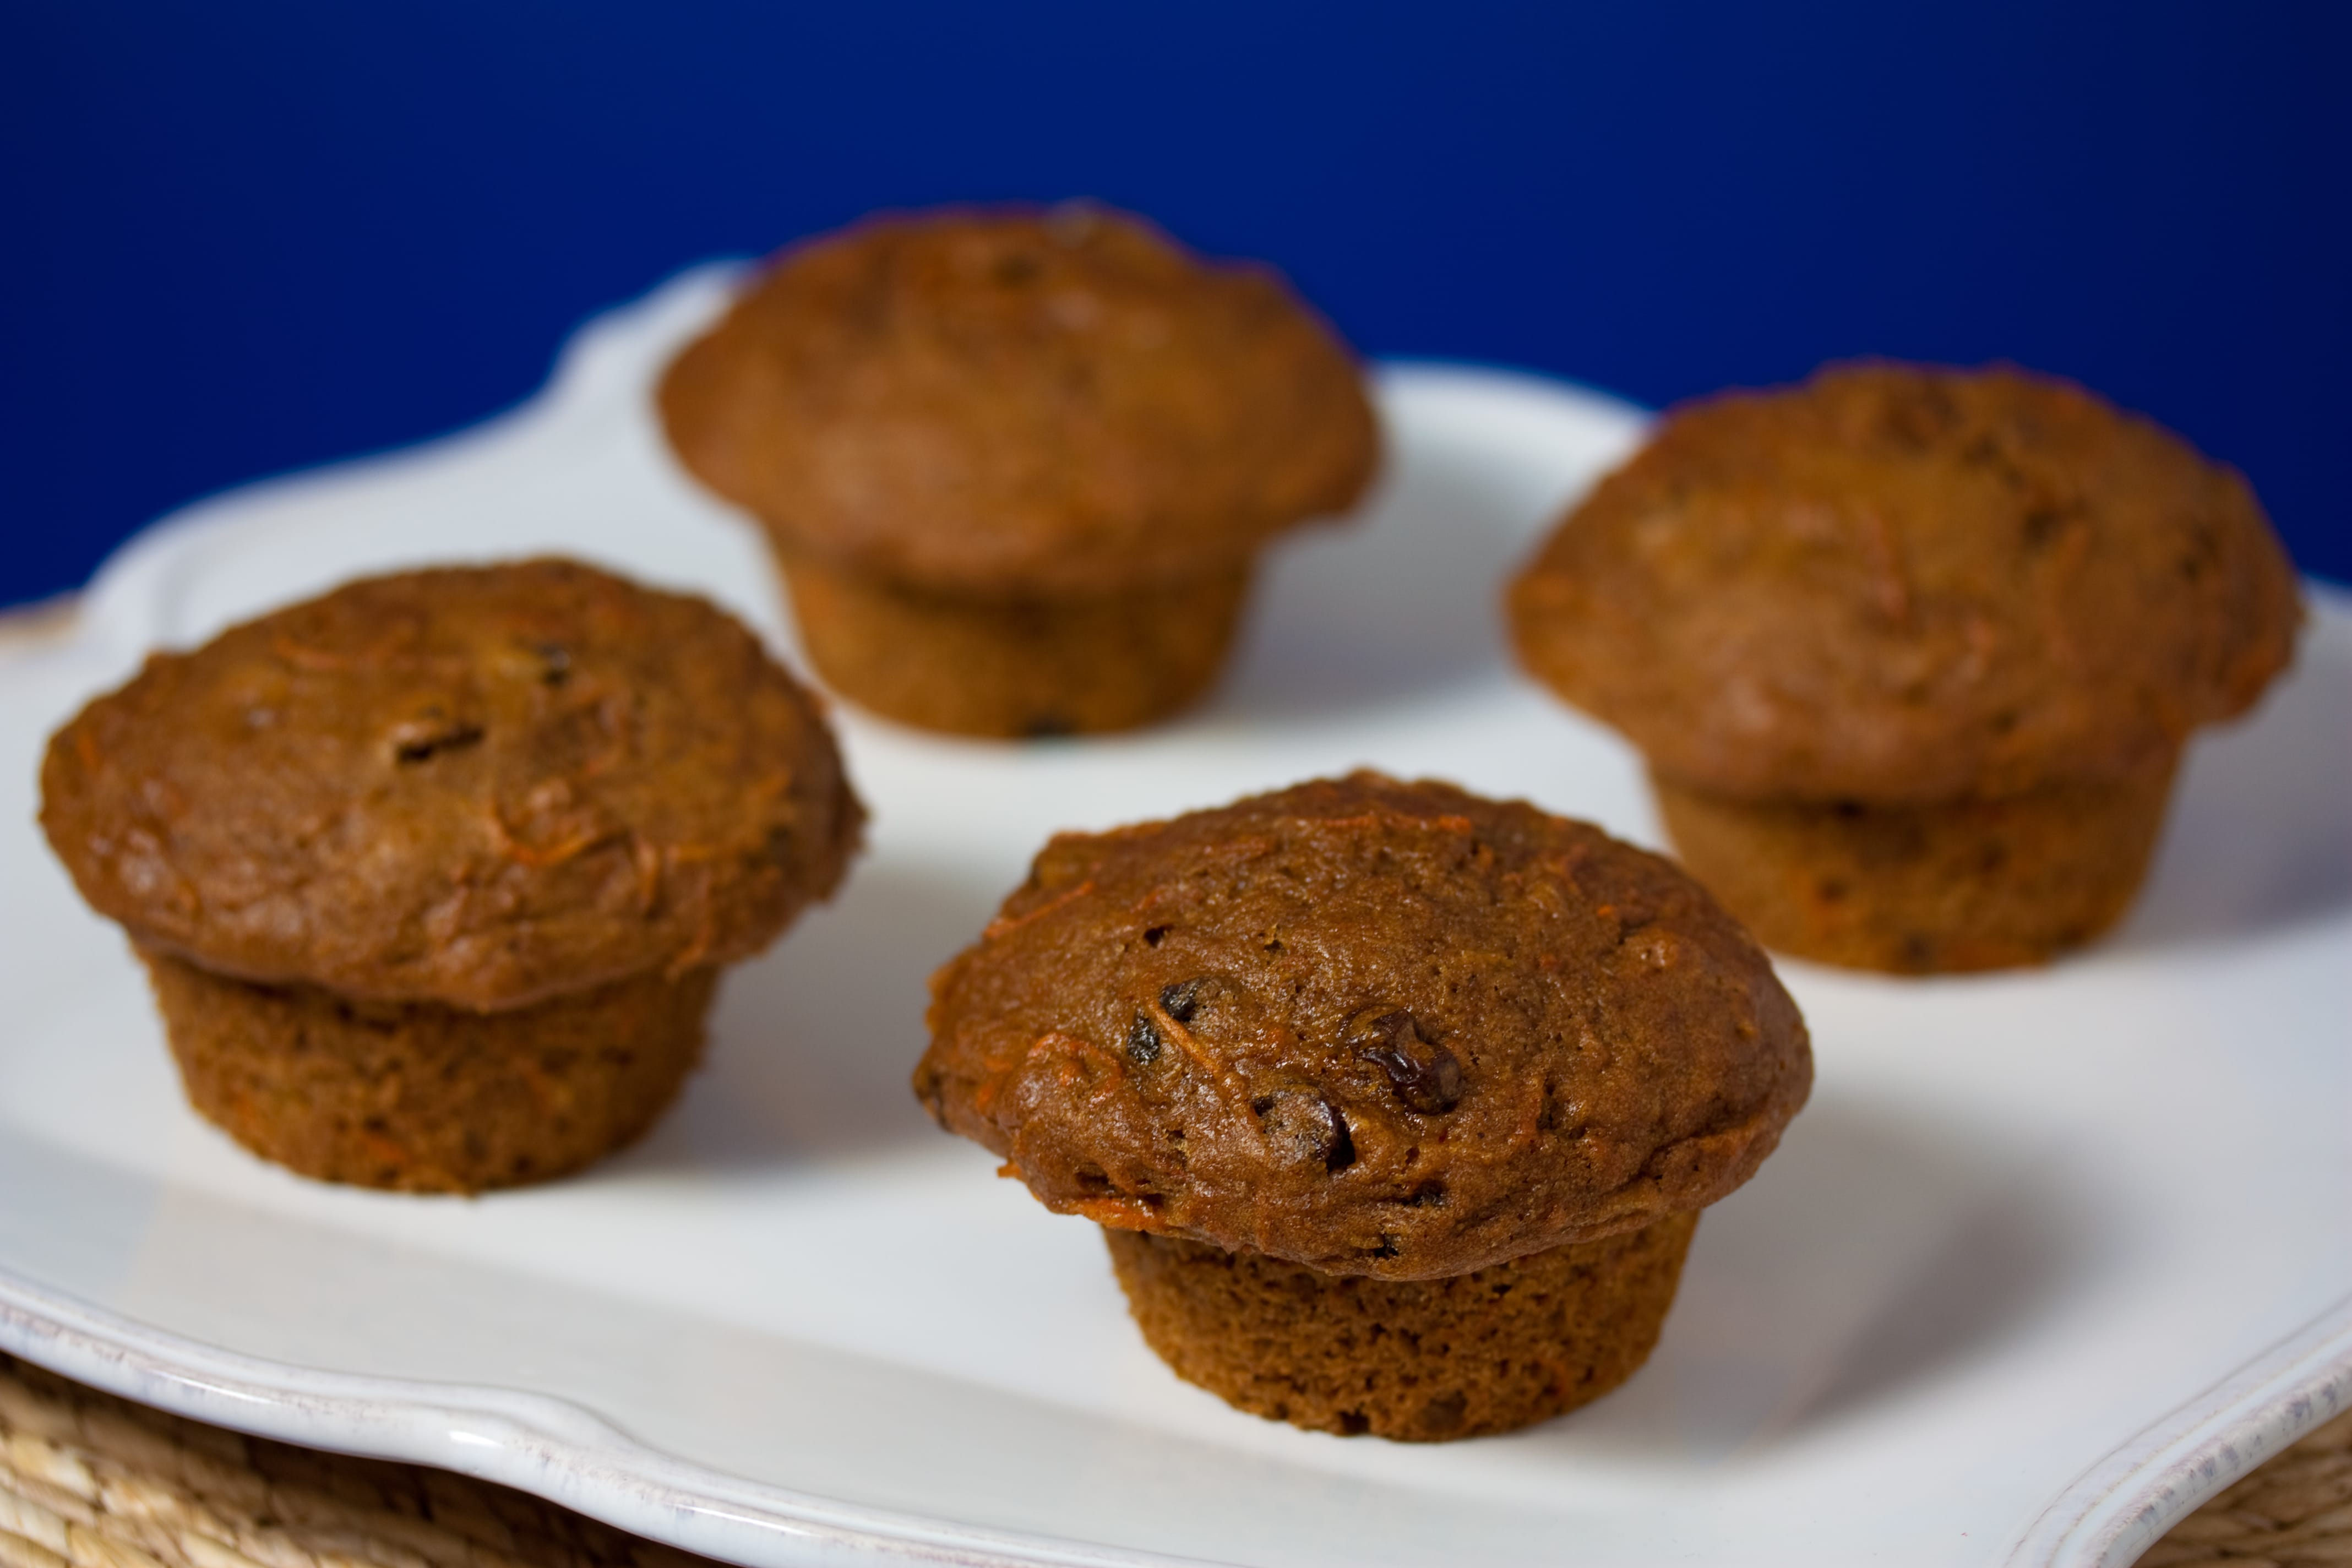 Carrot_Cake_Muffins_(4135137580)